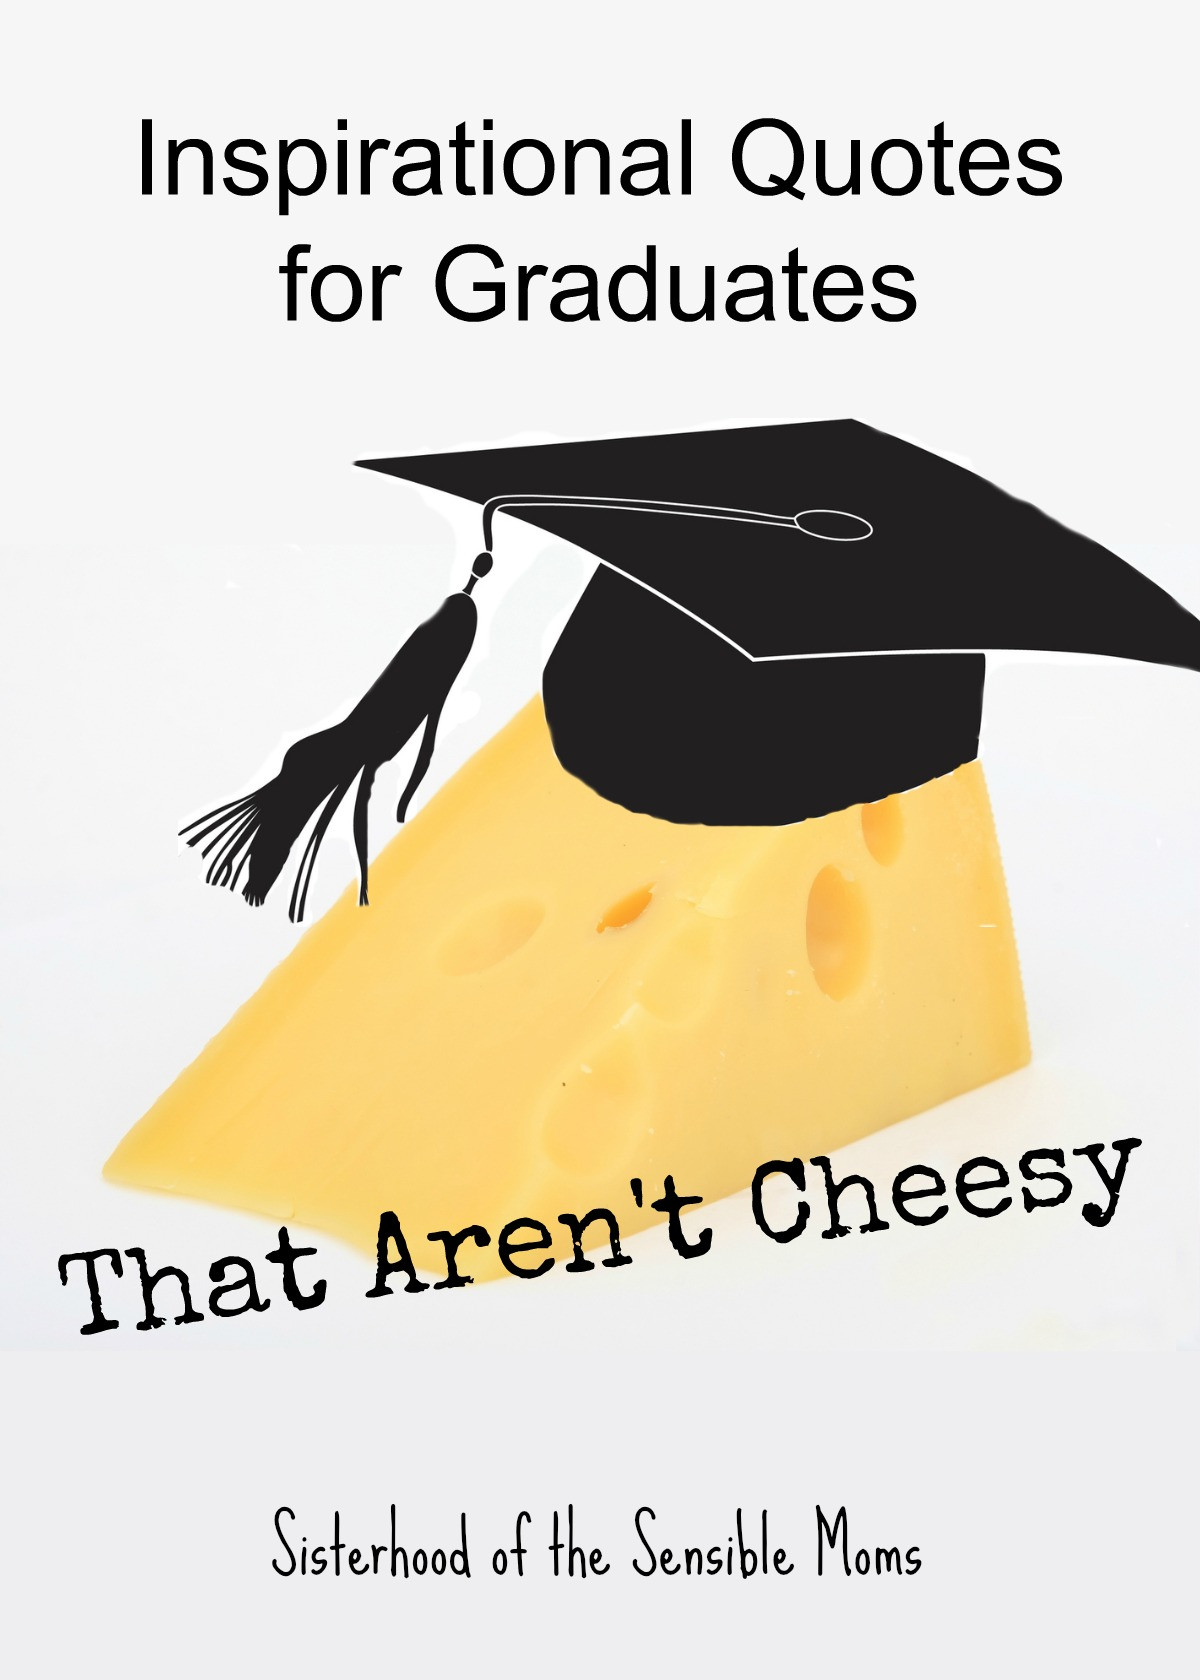 Inspirational Quotes For College Graduation  Inspirational Quotes for Graduates That Aren t Cheesy